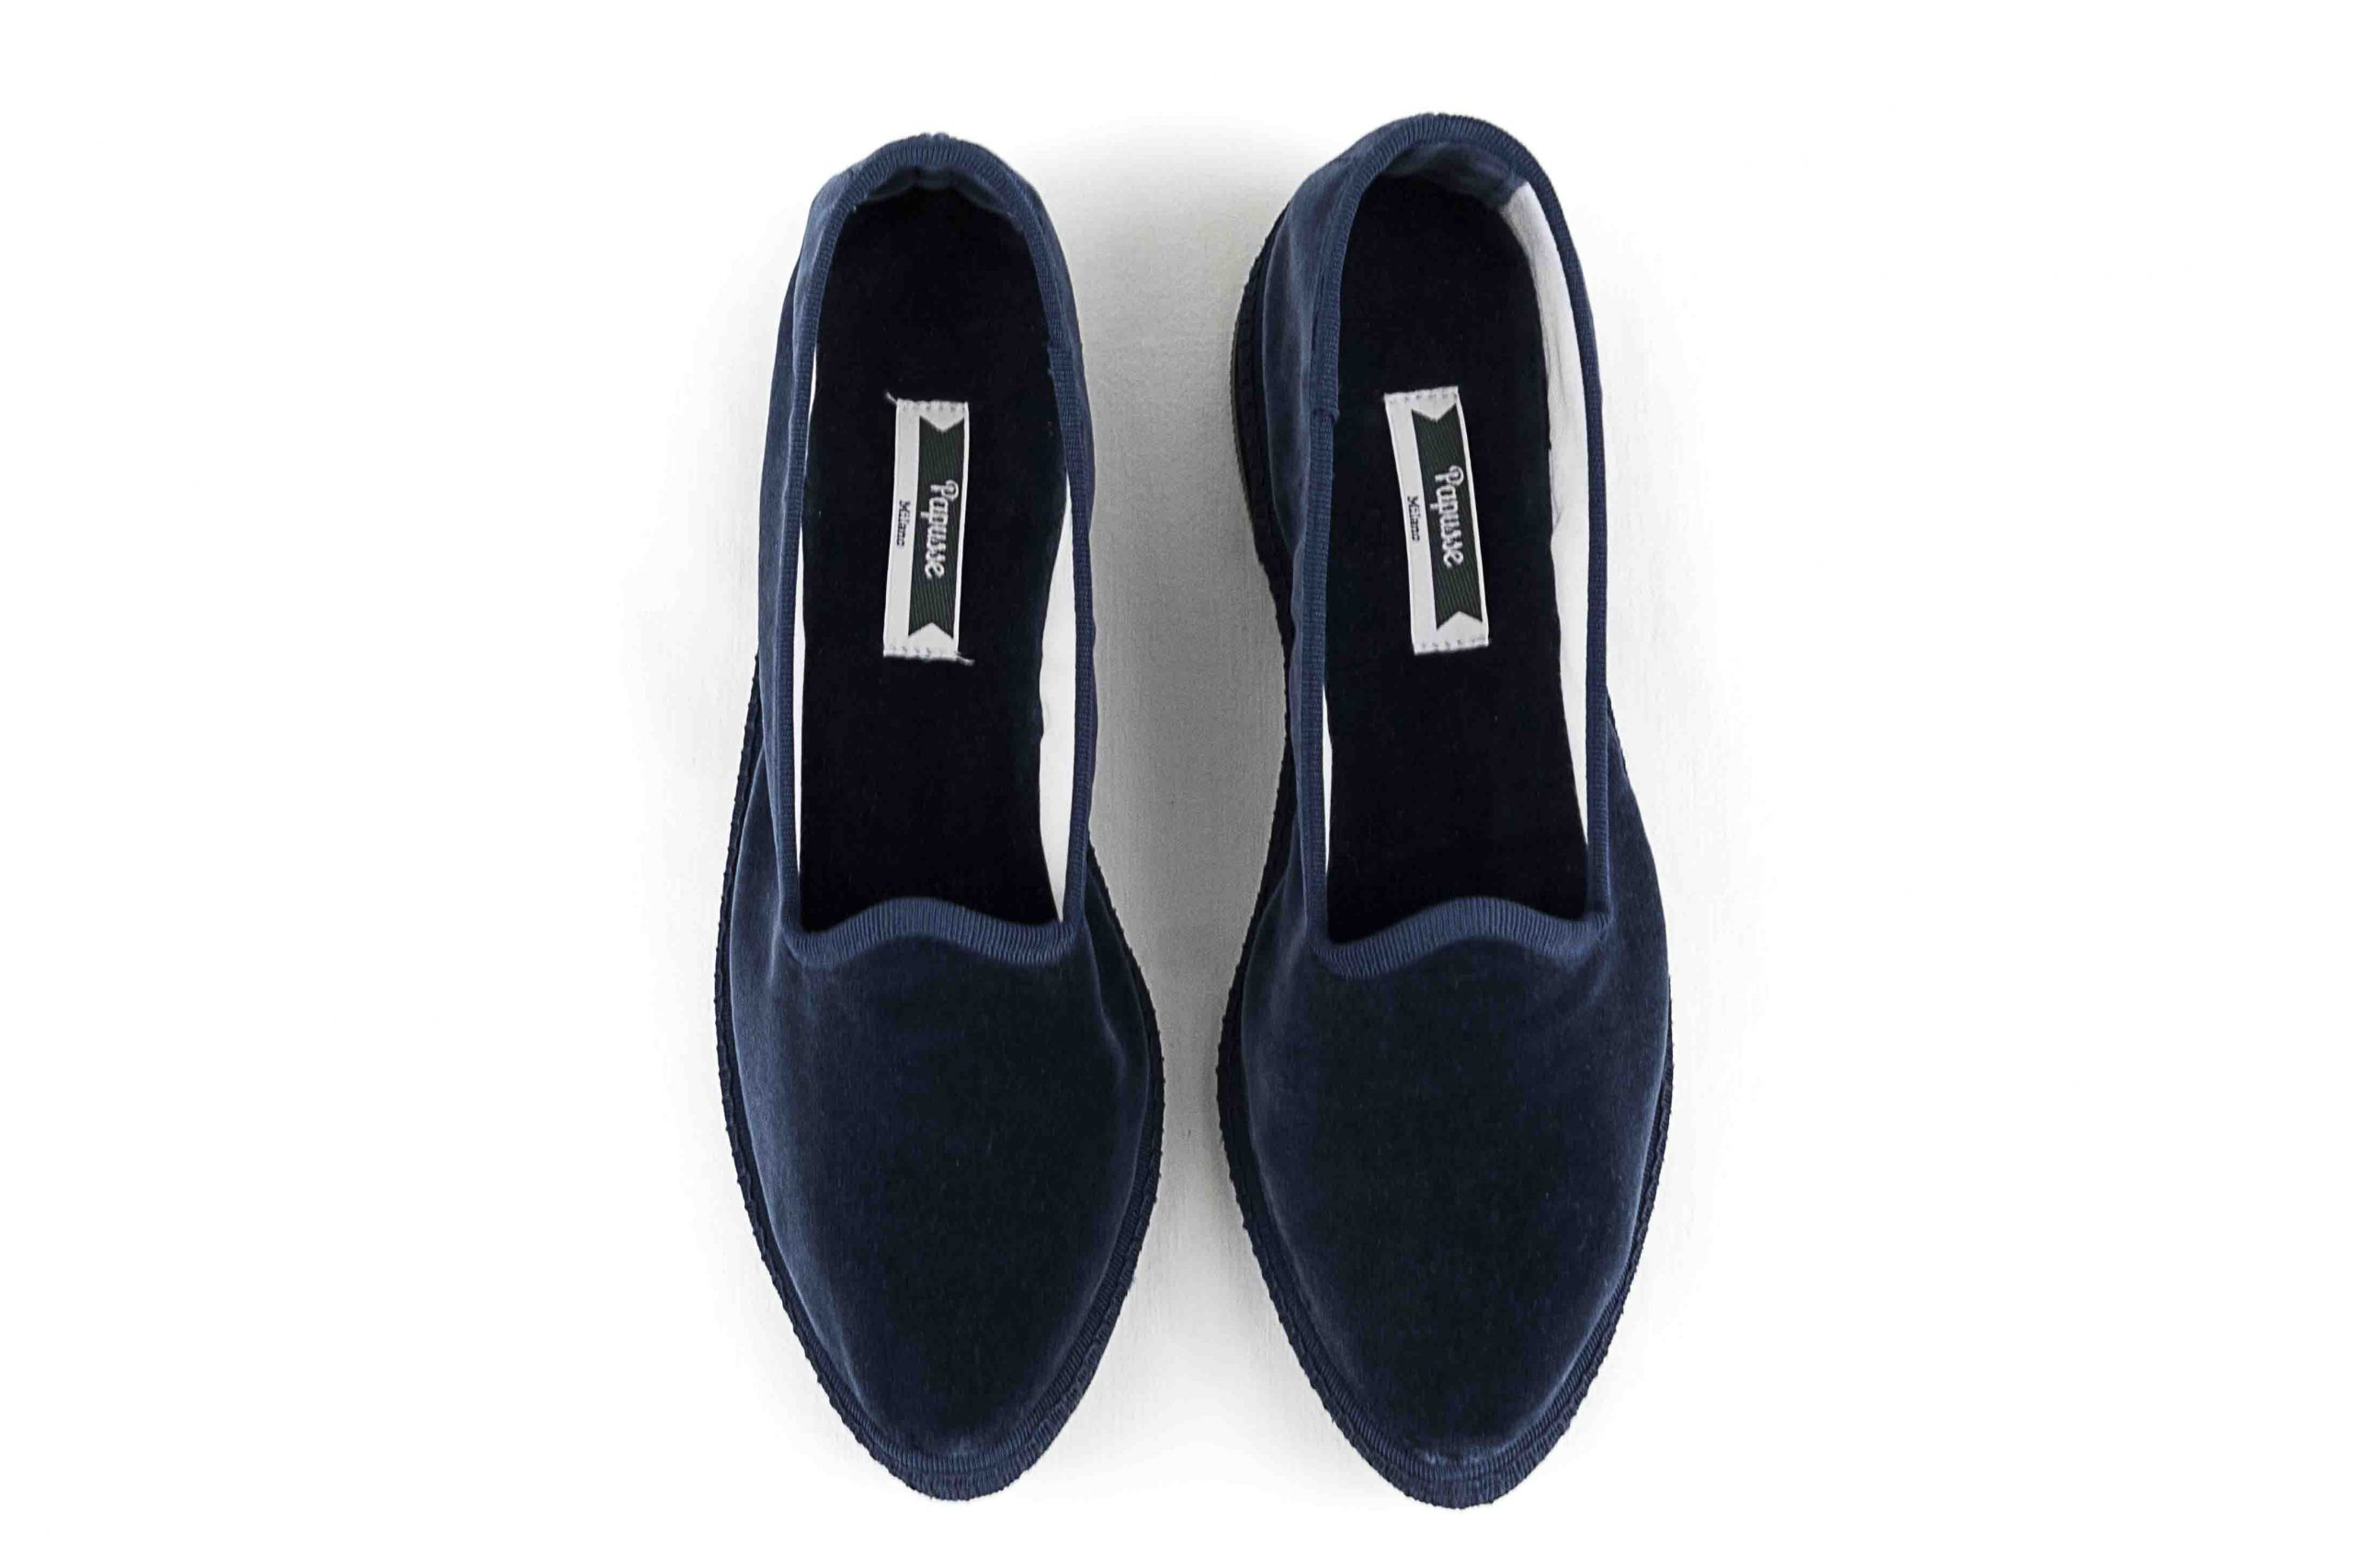 slippers_Notte_top